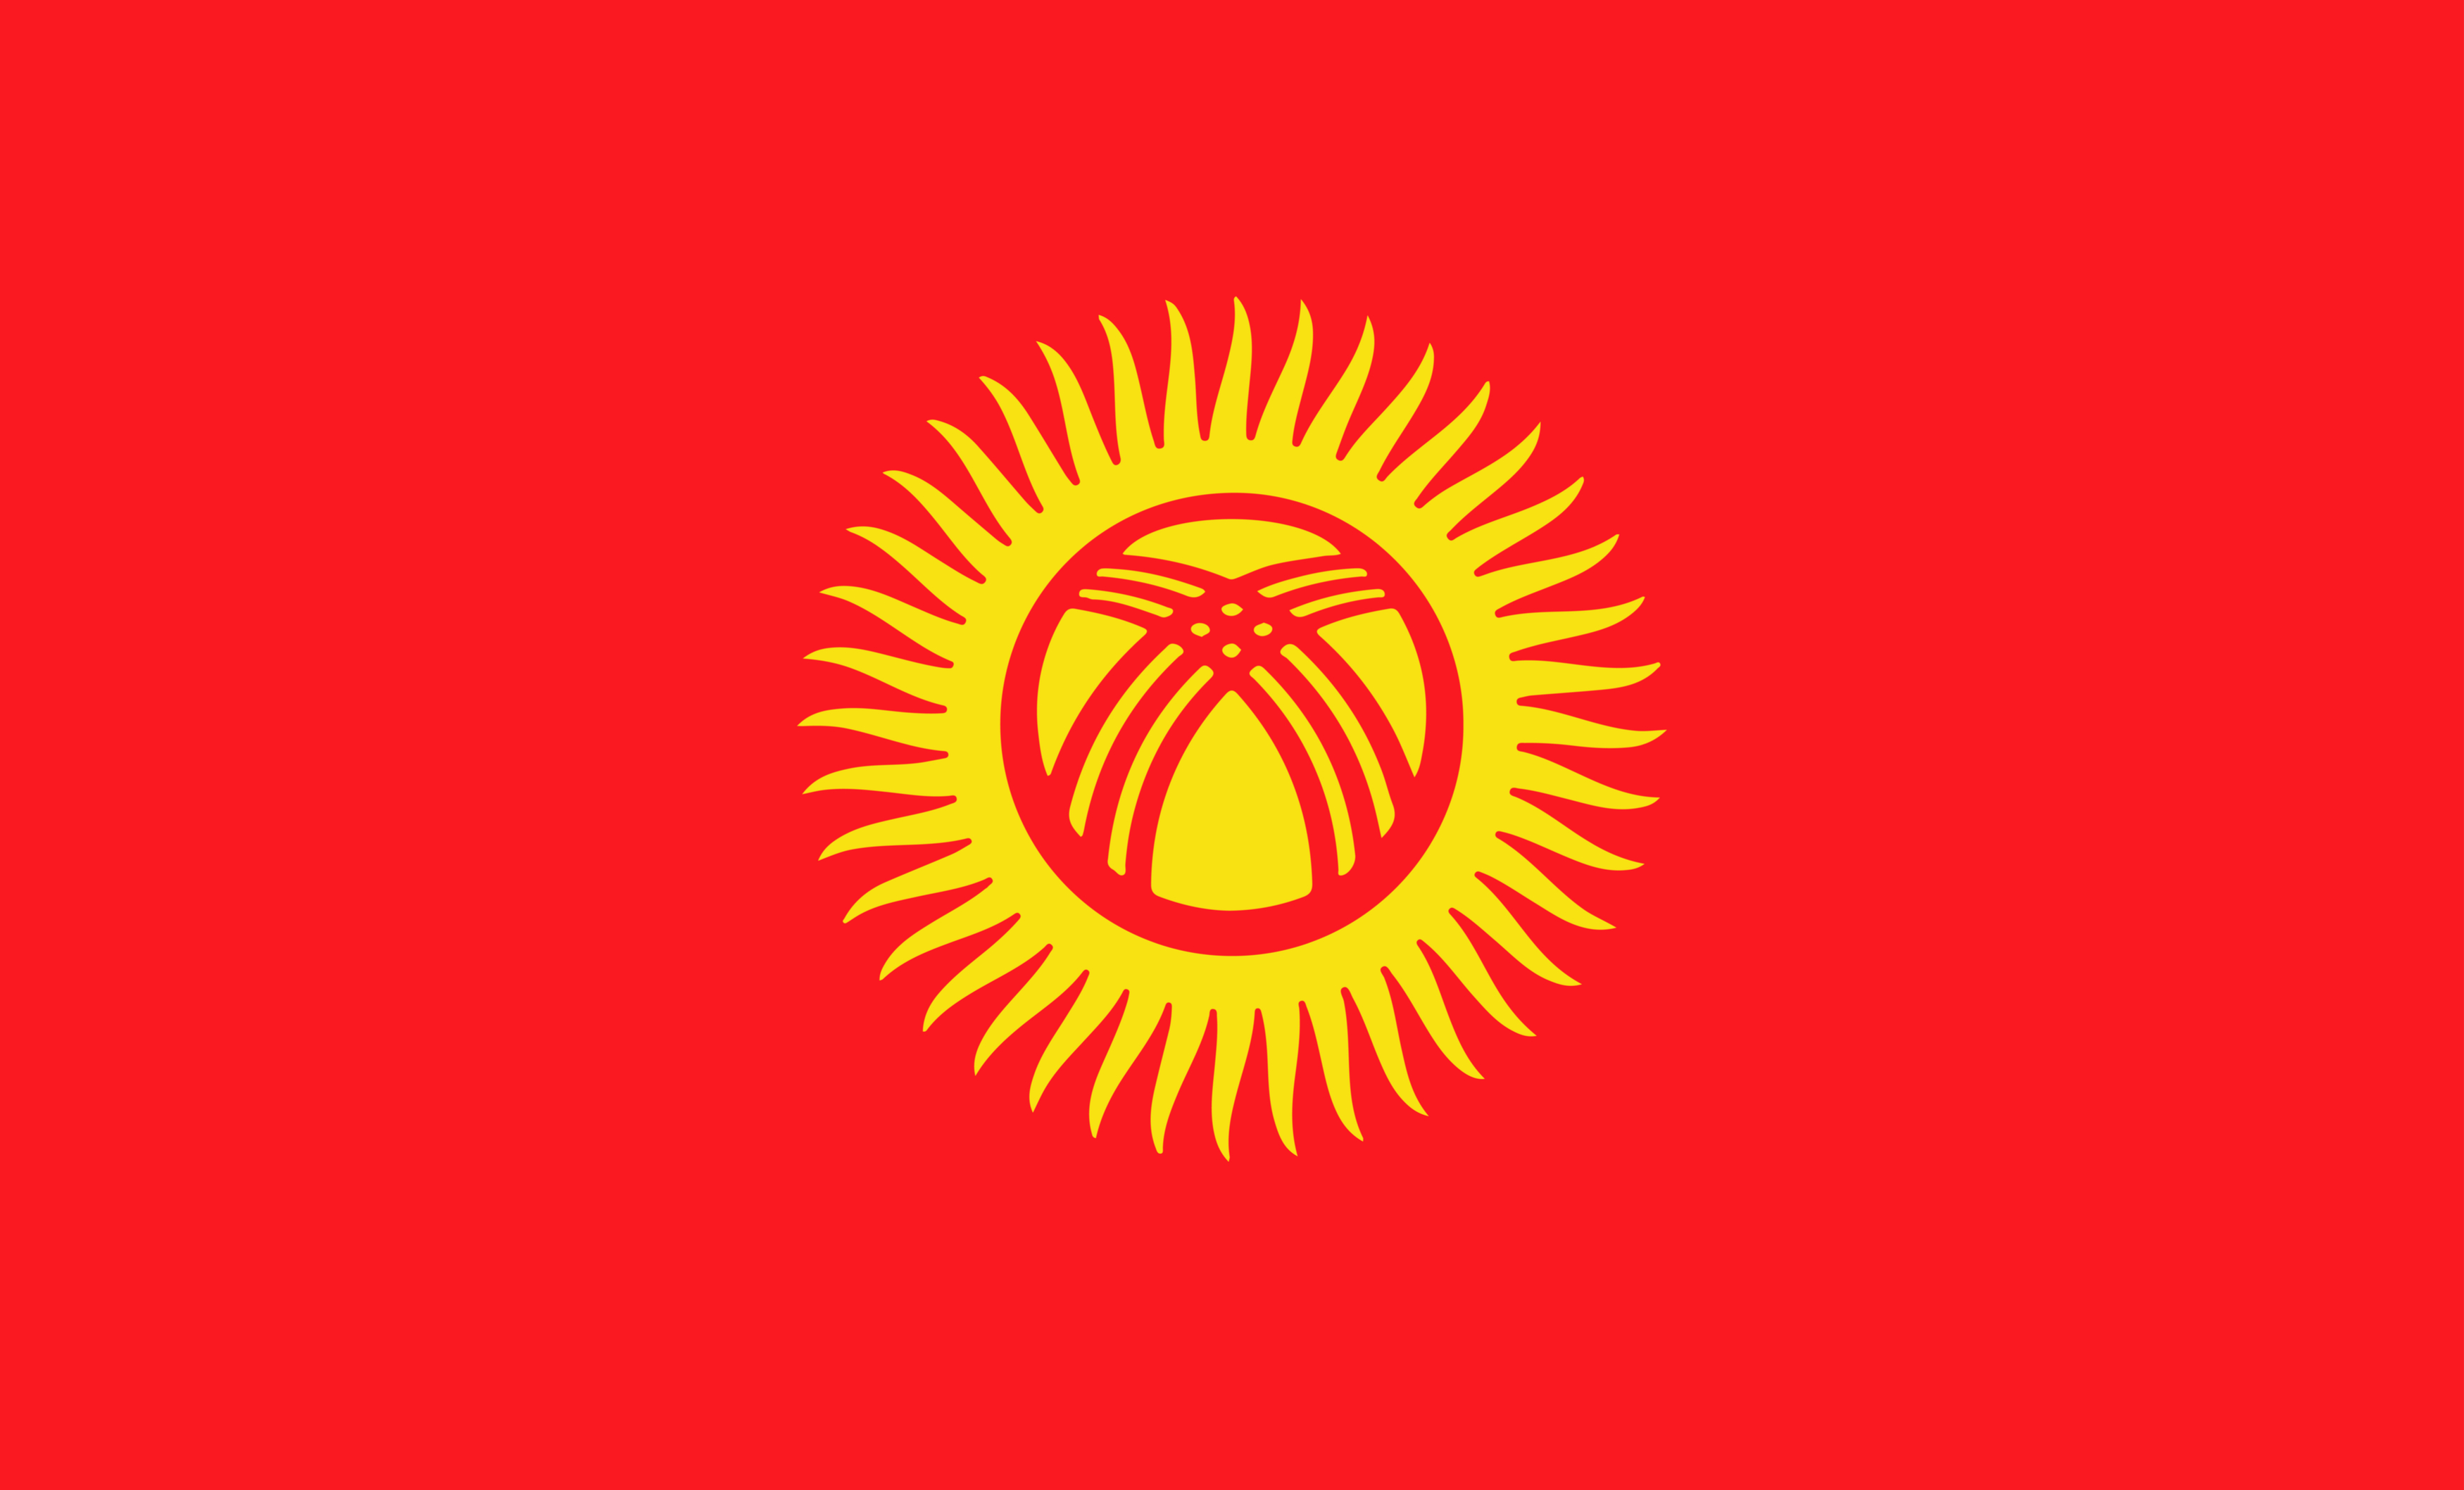 The sun at the center of the flag has forty rays symbolizing the forty tribes that united together.